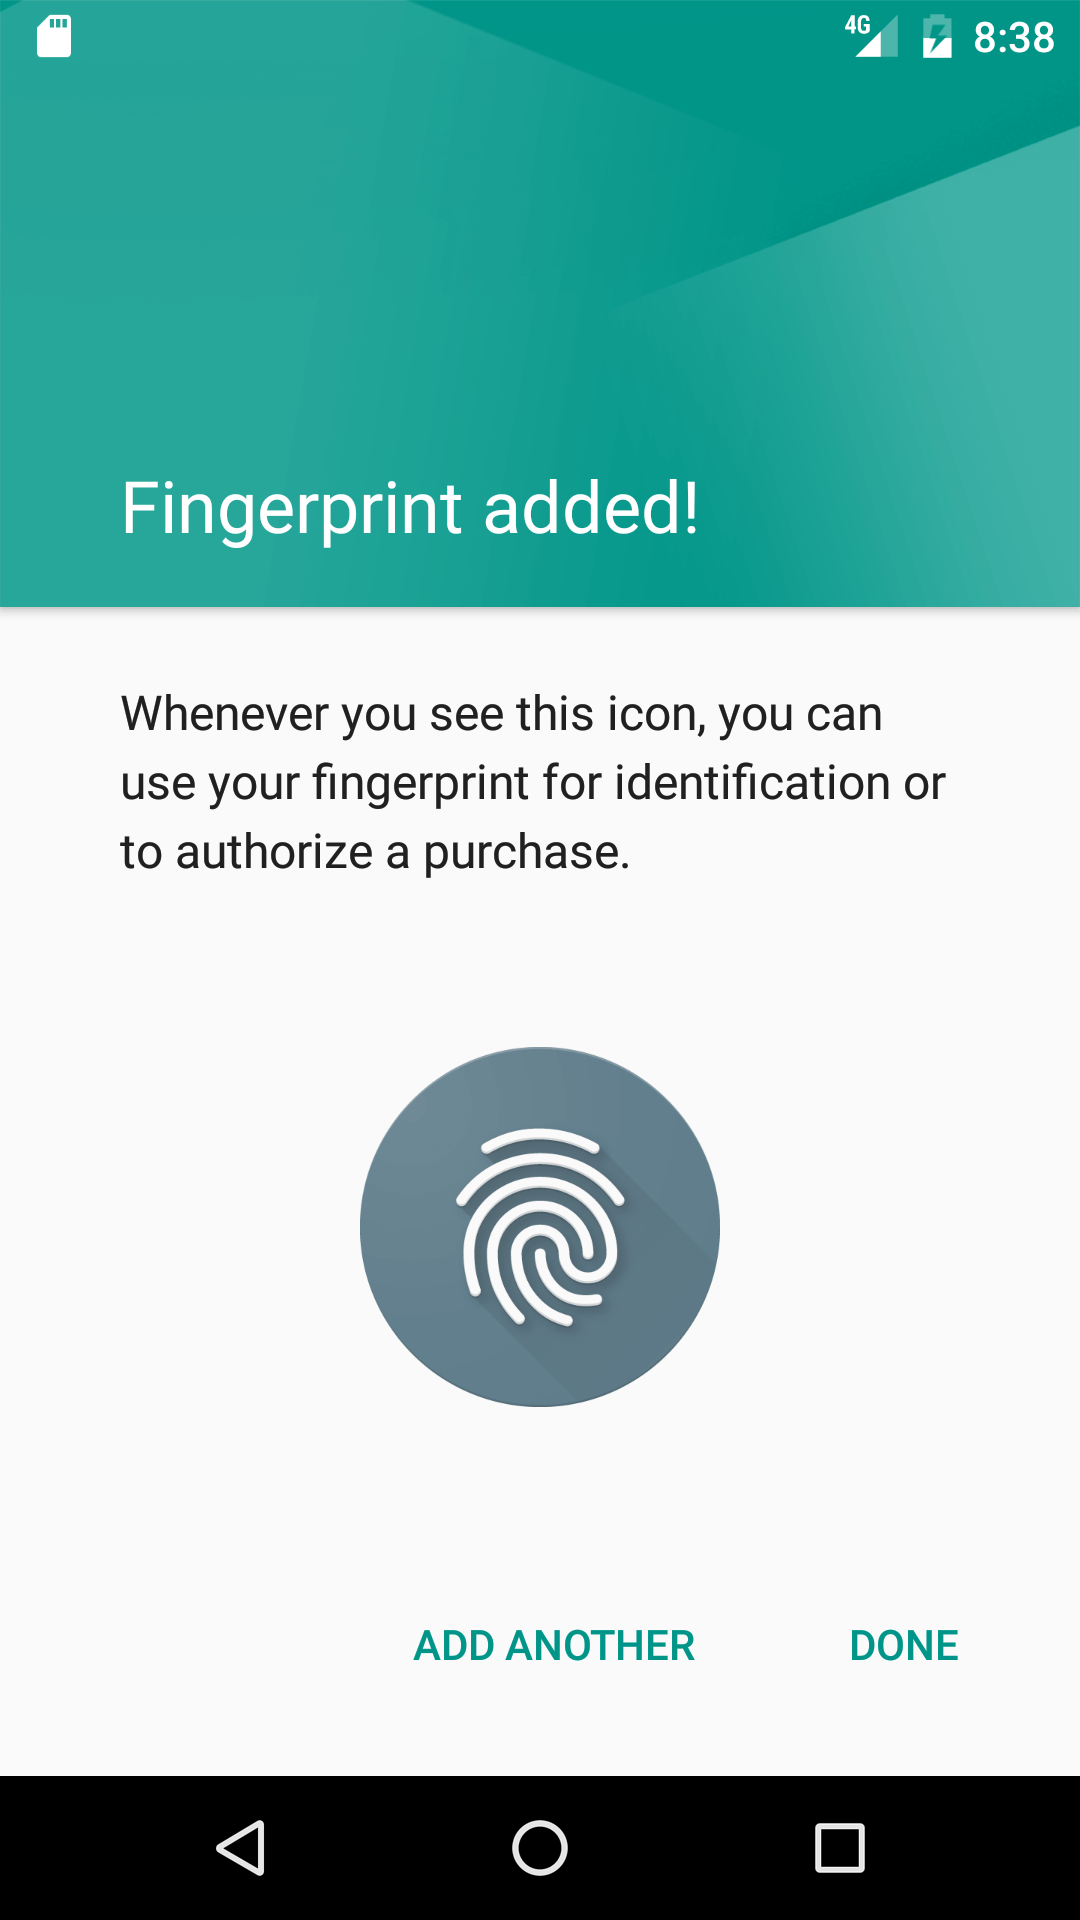 android avd fingerprint config